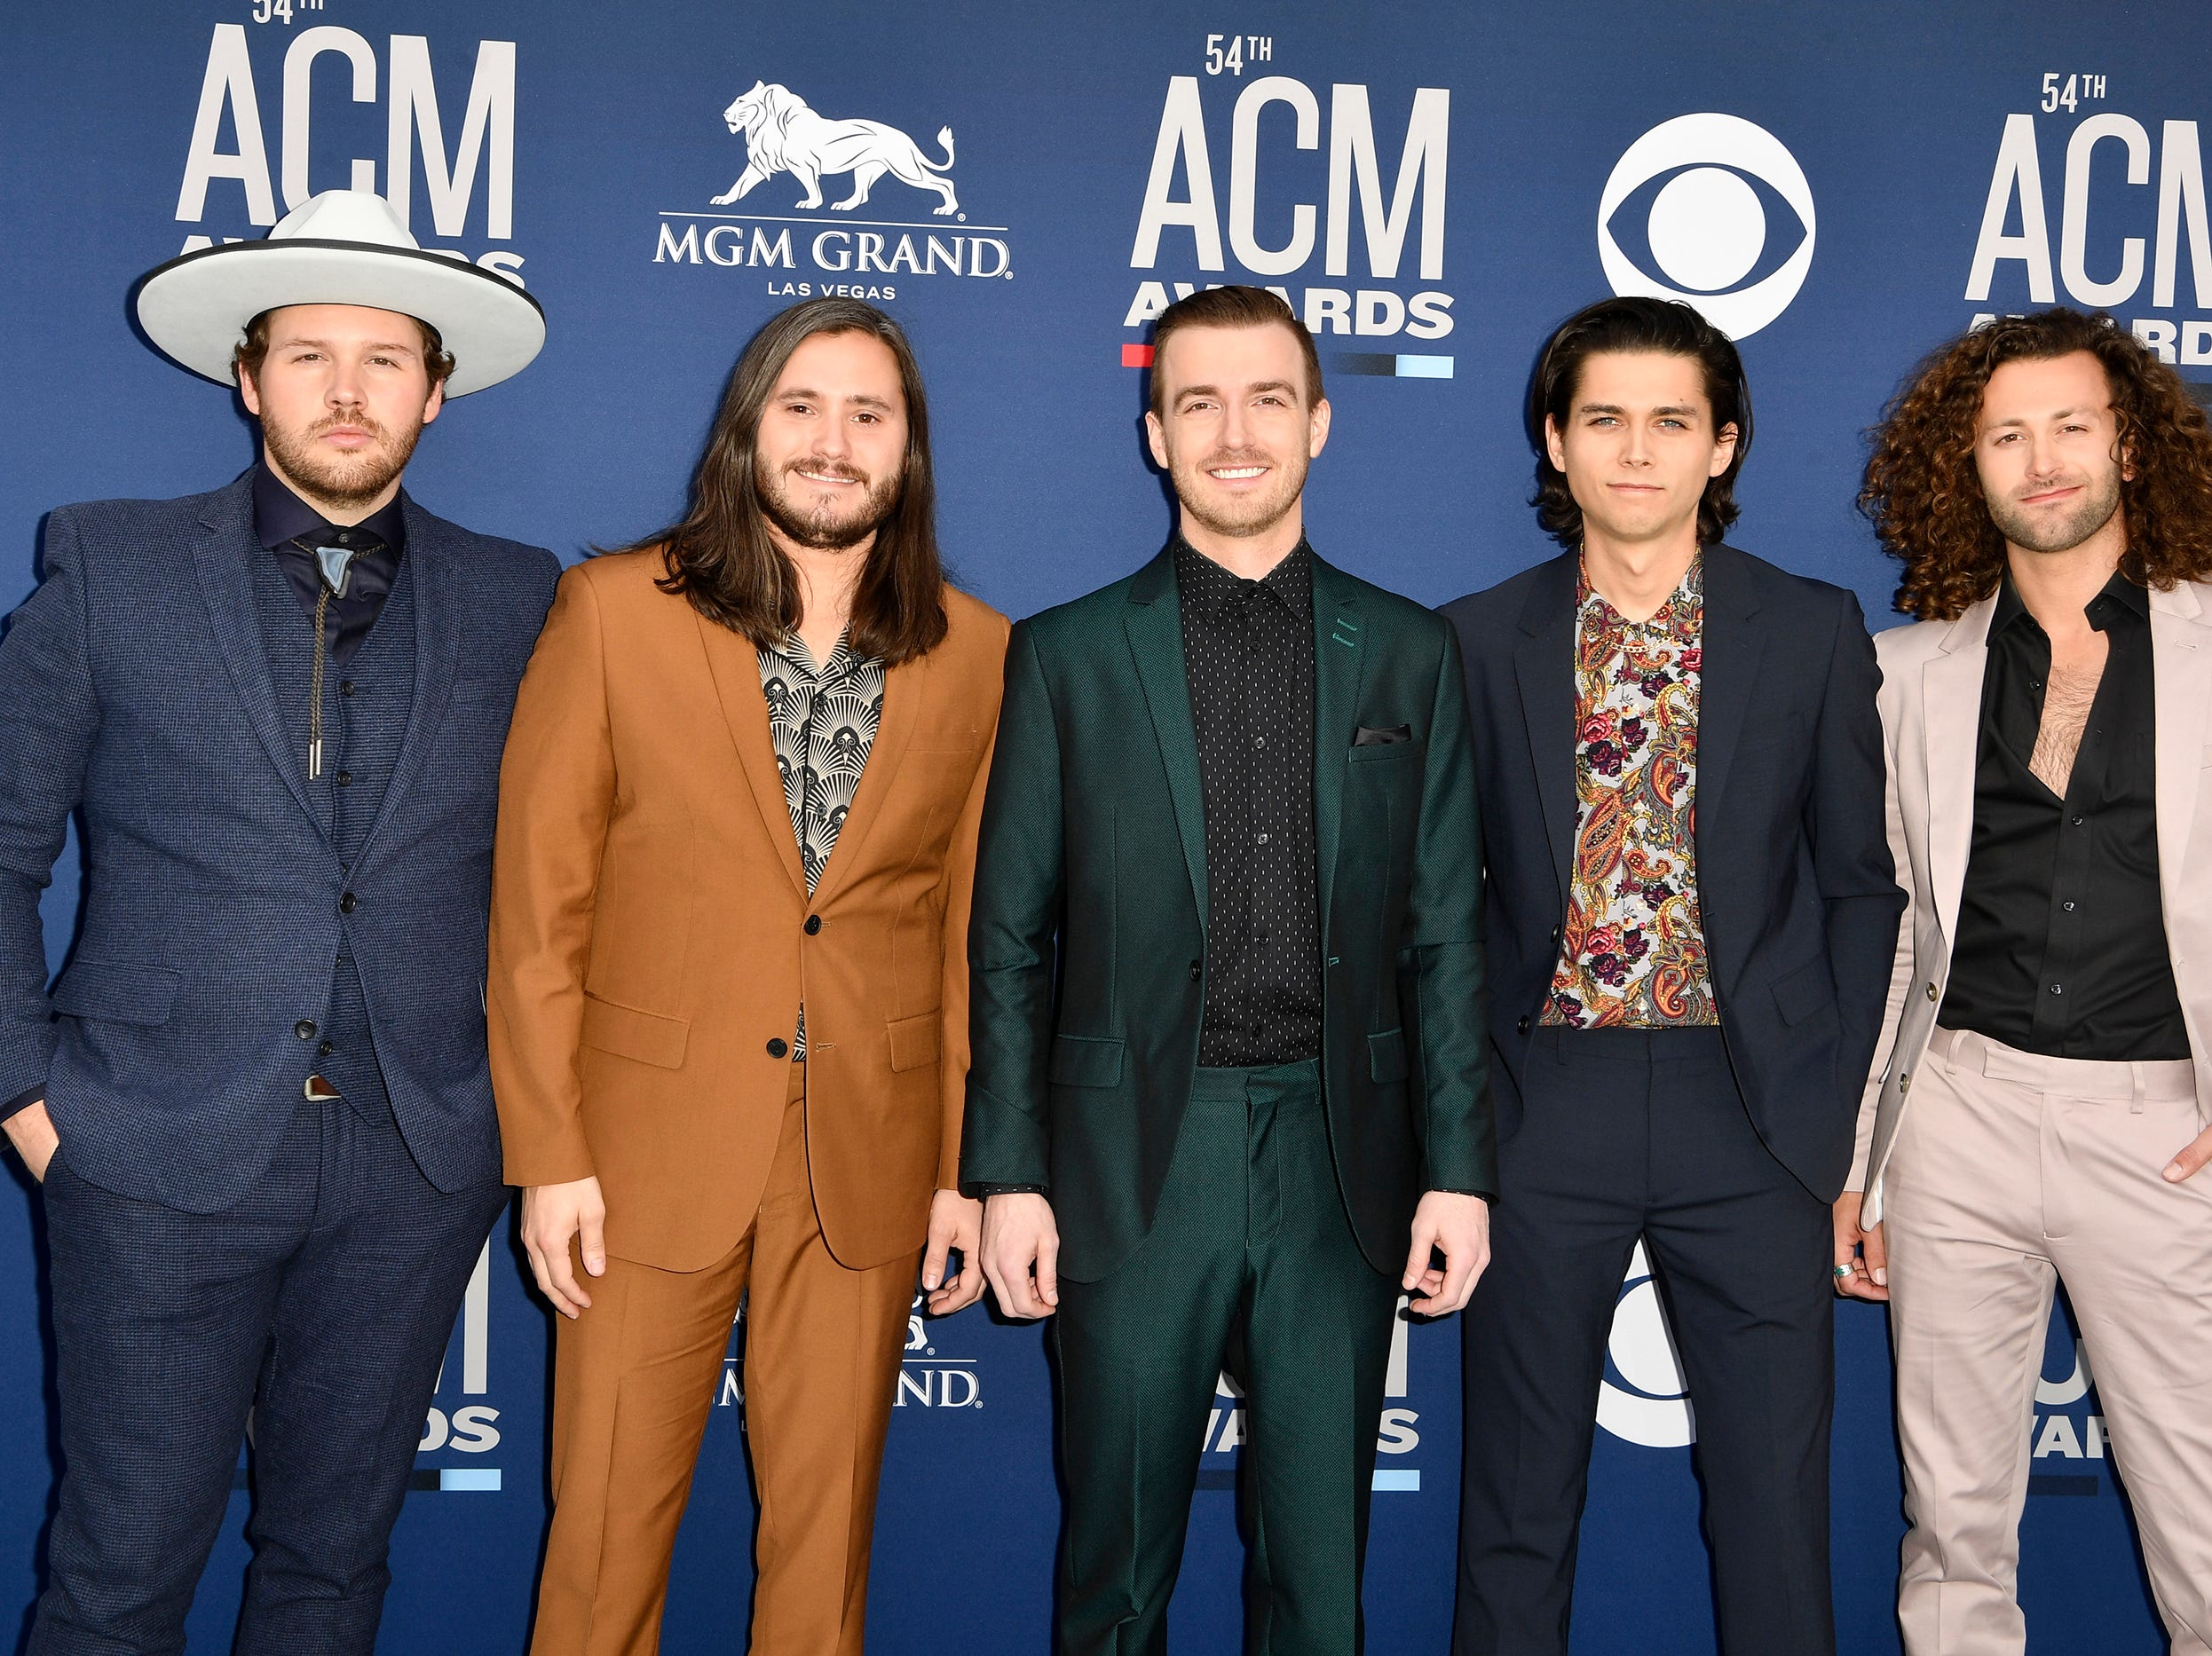 Lanco walks the red carpet at the 54TH Academy of Country Music Awards Sunday, April 7, 2019, in Las Vegas, Nev.